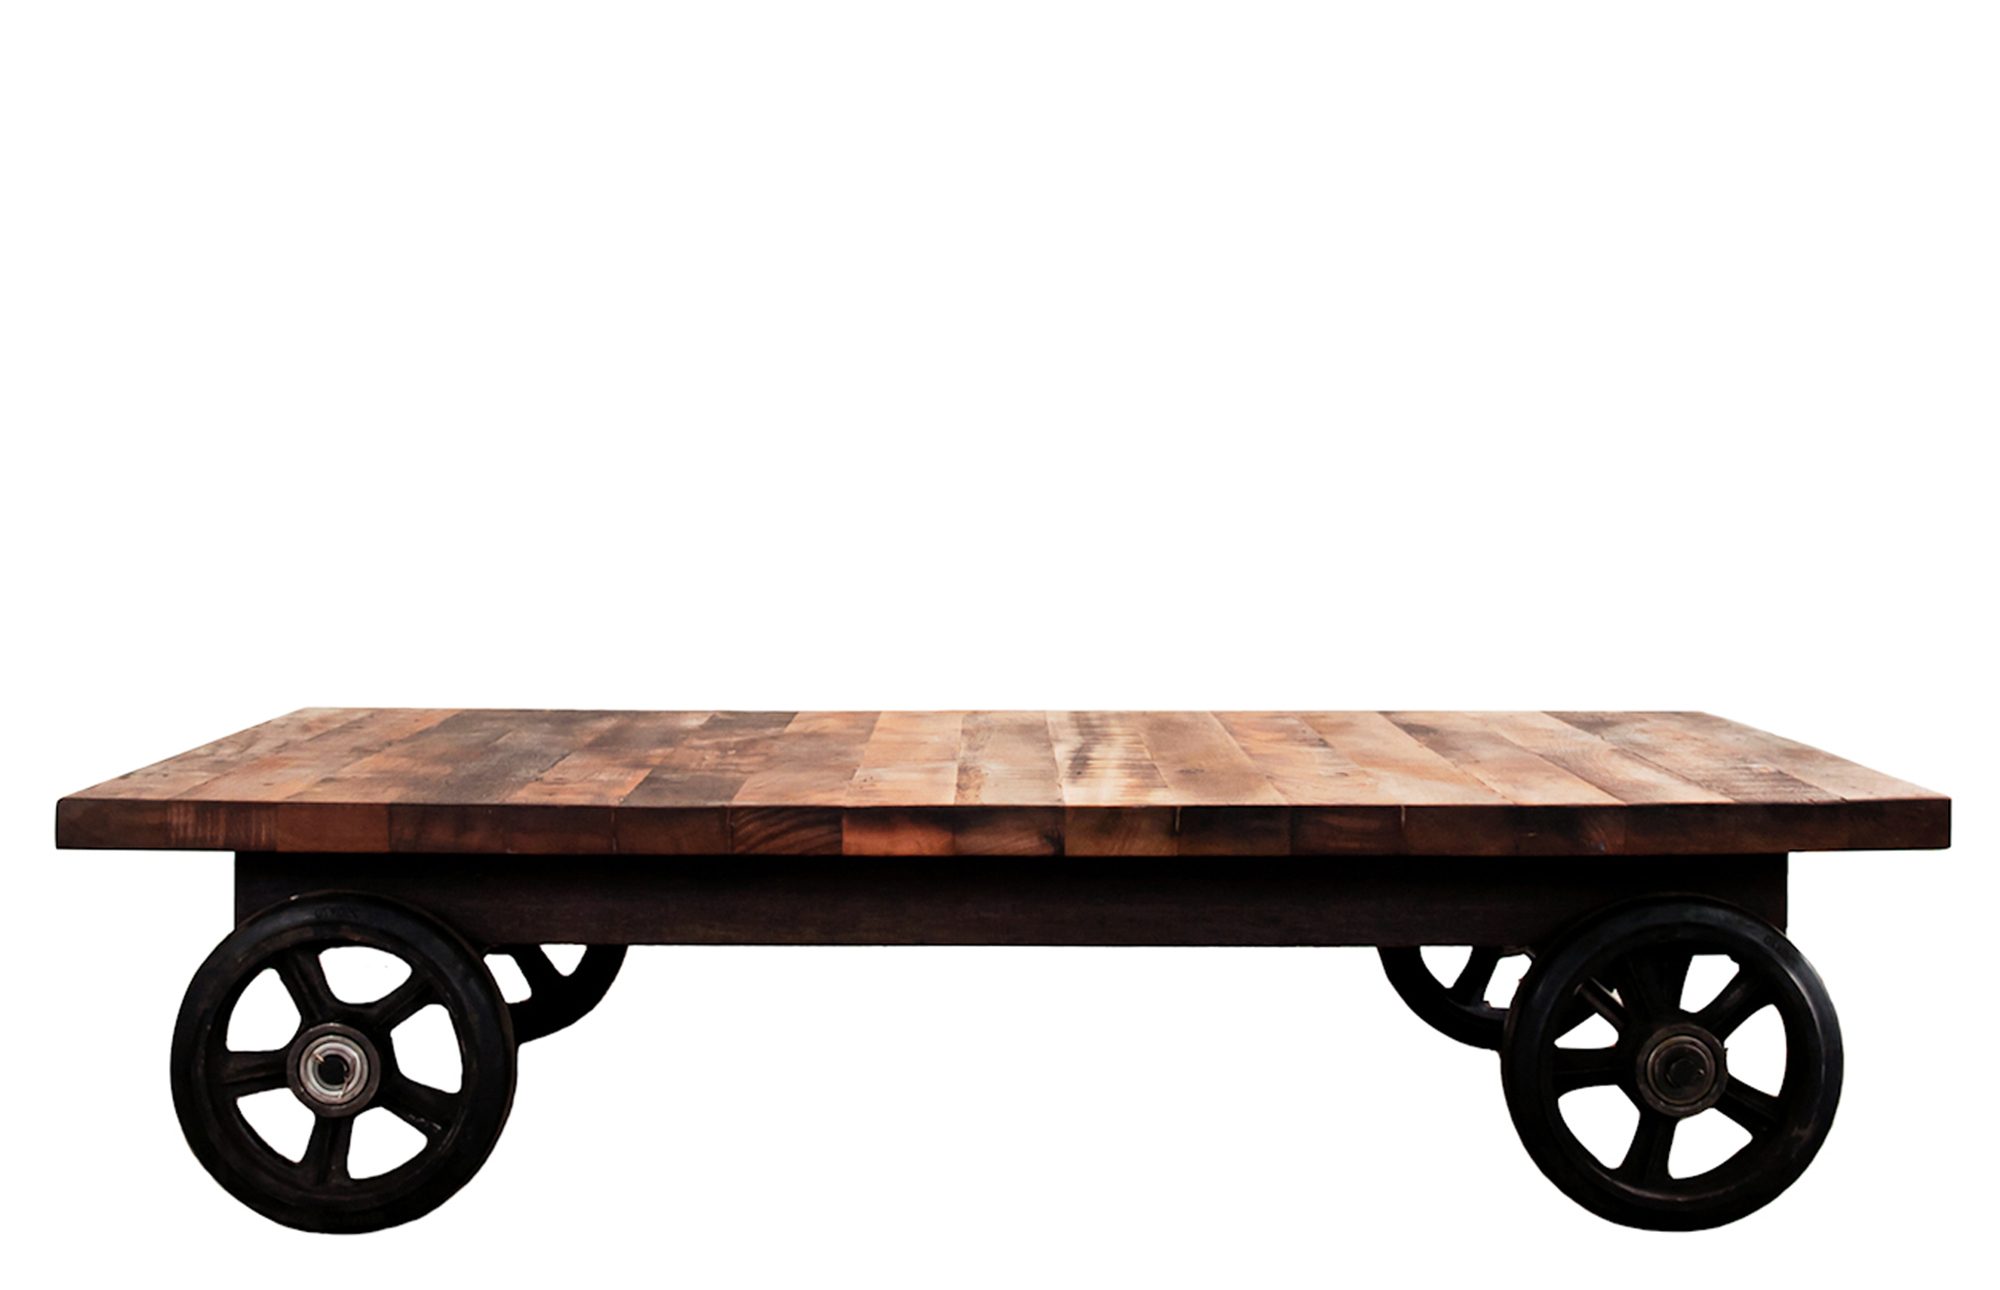 Preferred Coffee Table With Wheels – Lounge Furniture – Out & Out Original Pertaining To Iron Wood Coffee Tables With Wheels (View 9 of 20)